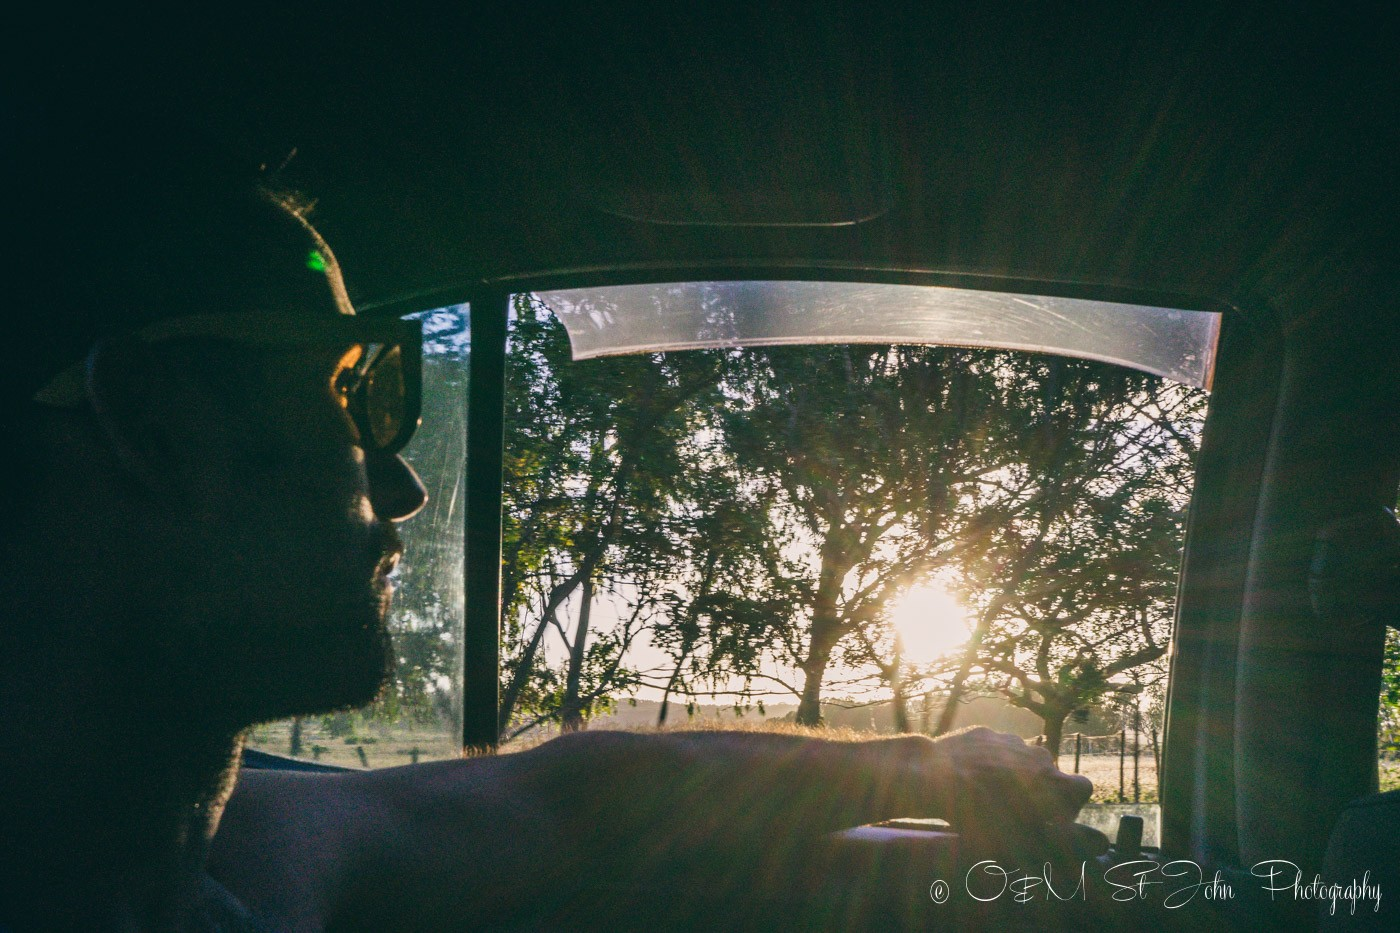 Max in taxi in Nicaragua